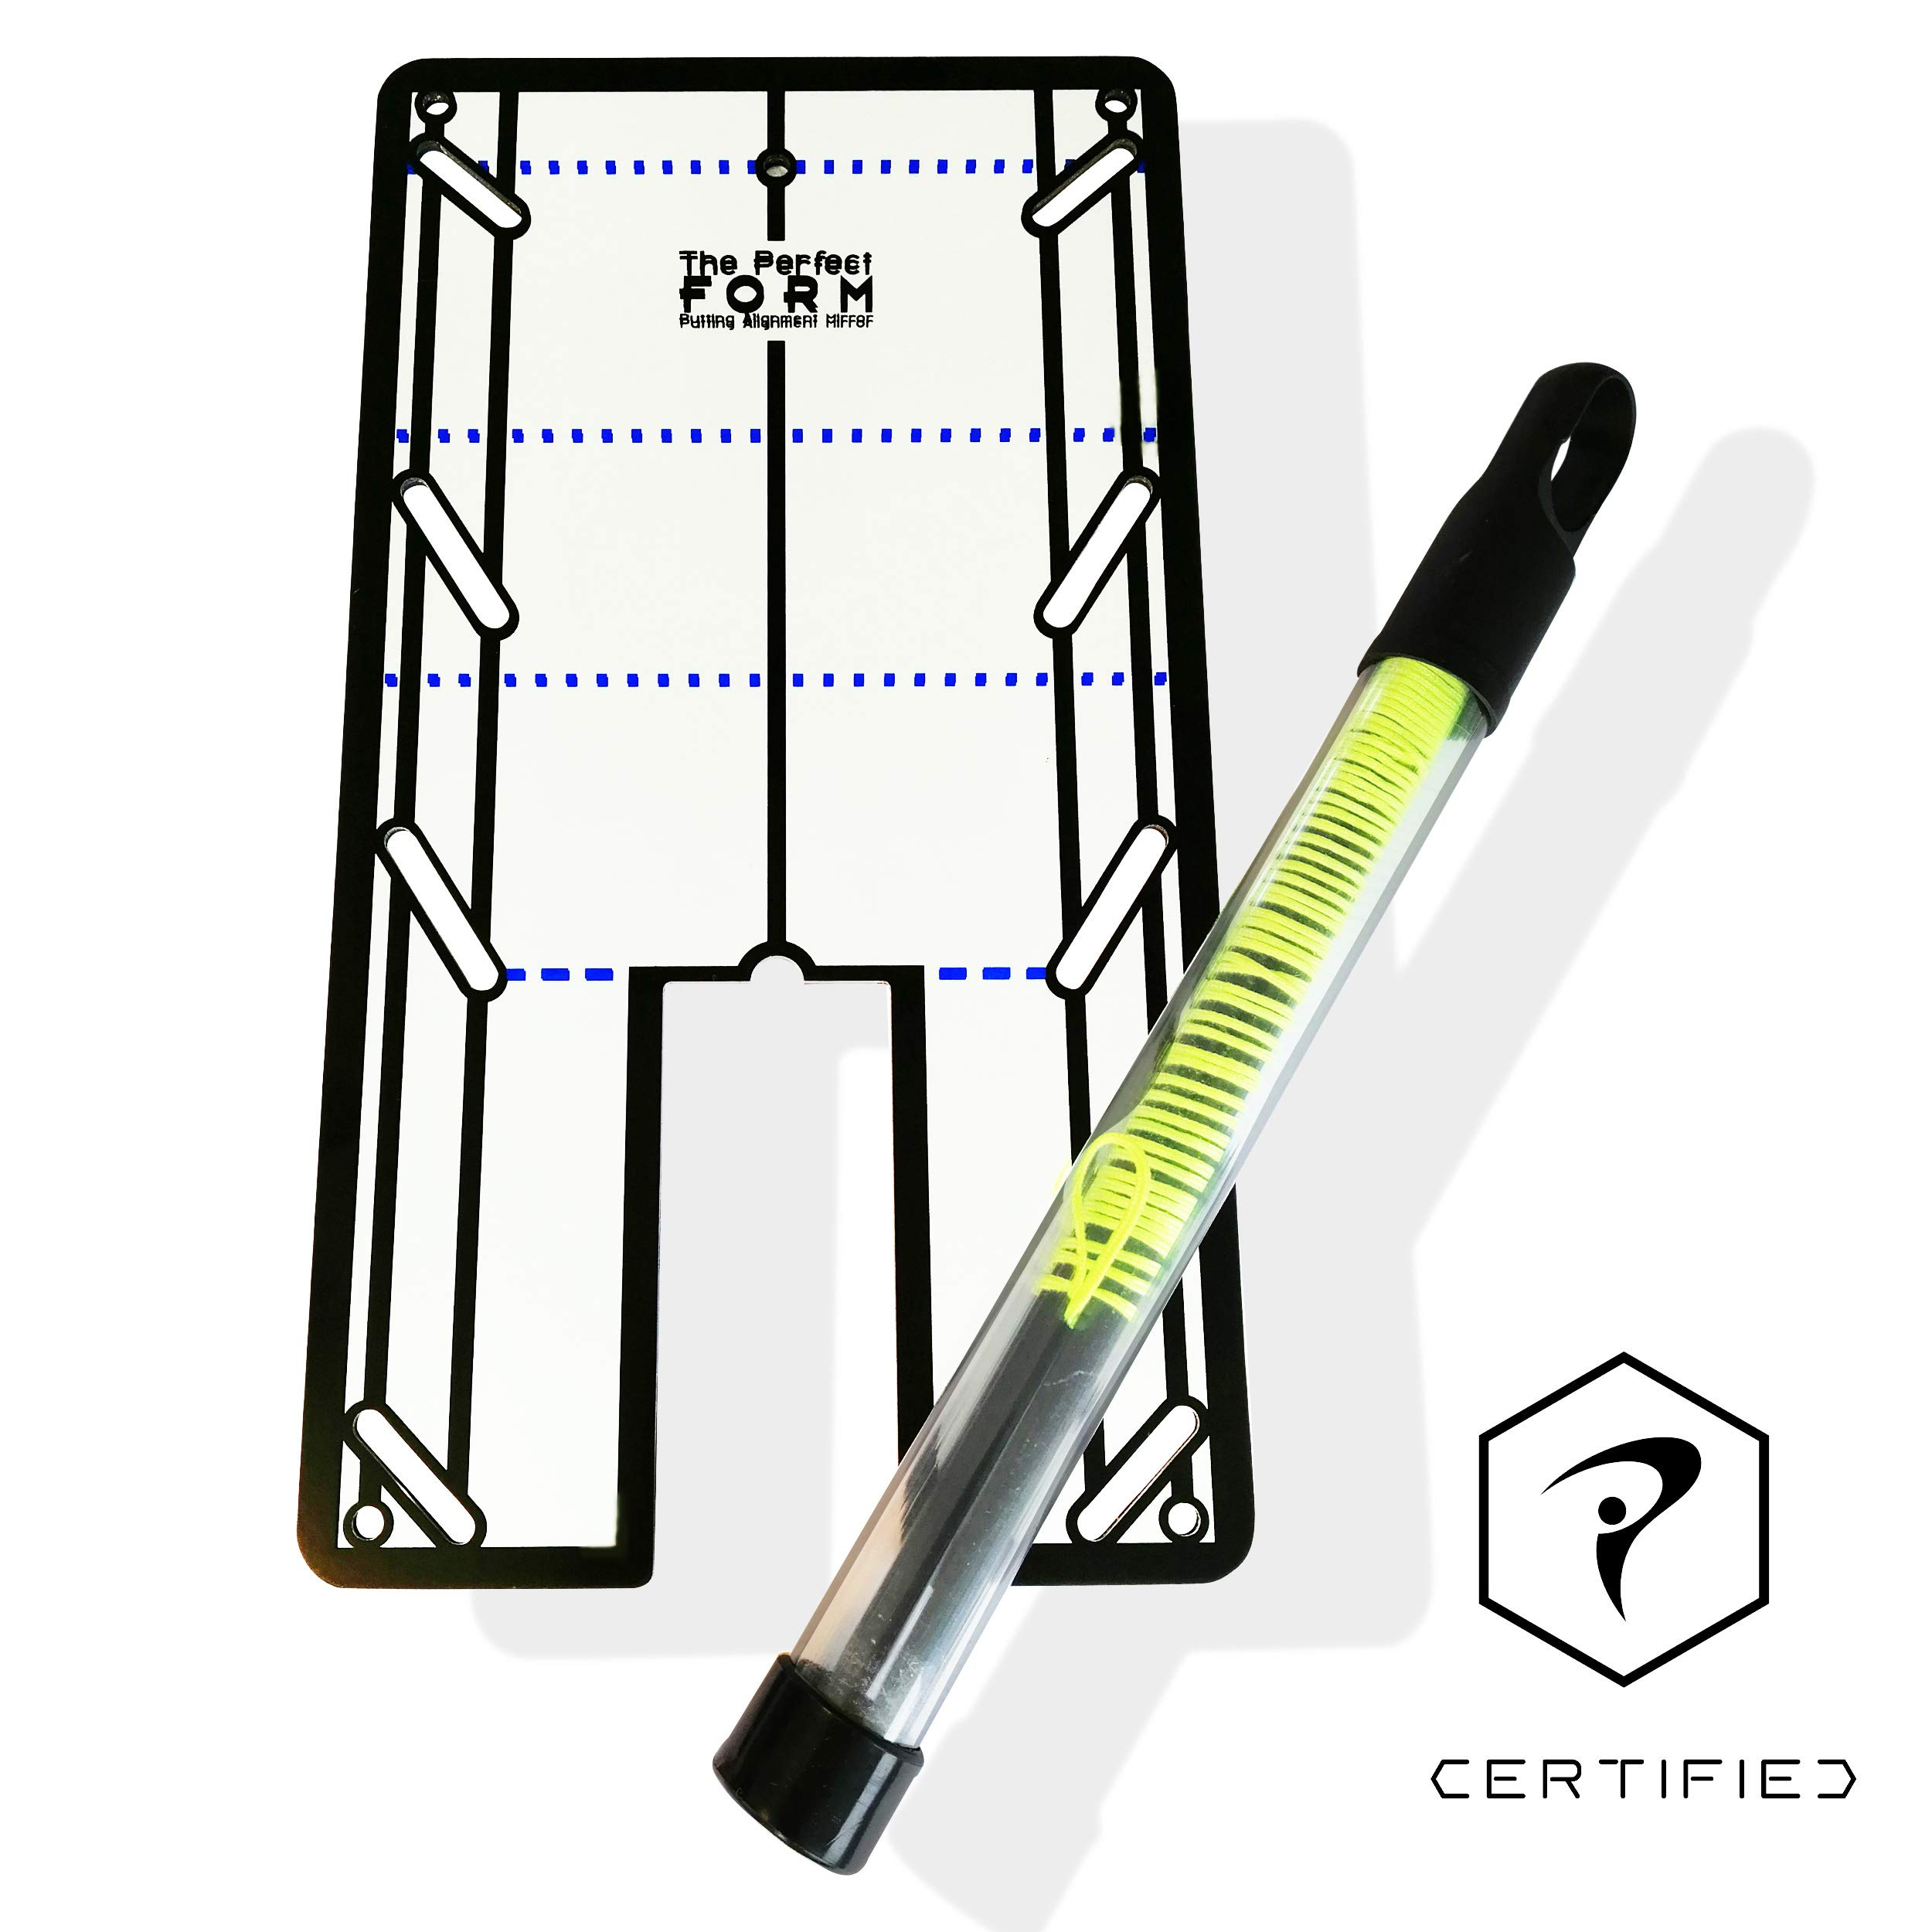 Perfect Form Golf Putting Training Aids - Putting Mirror Putting String Combo. Portable 2-in-1 Putting Aids for Golf. Alignment, Eyeline, Putter Path, Impact Trainer. Golf Training Aids with Carry Bag by Form